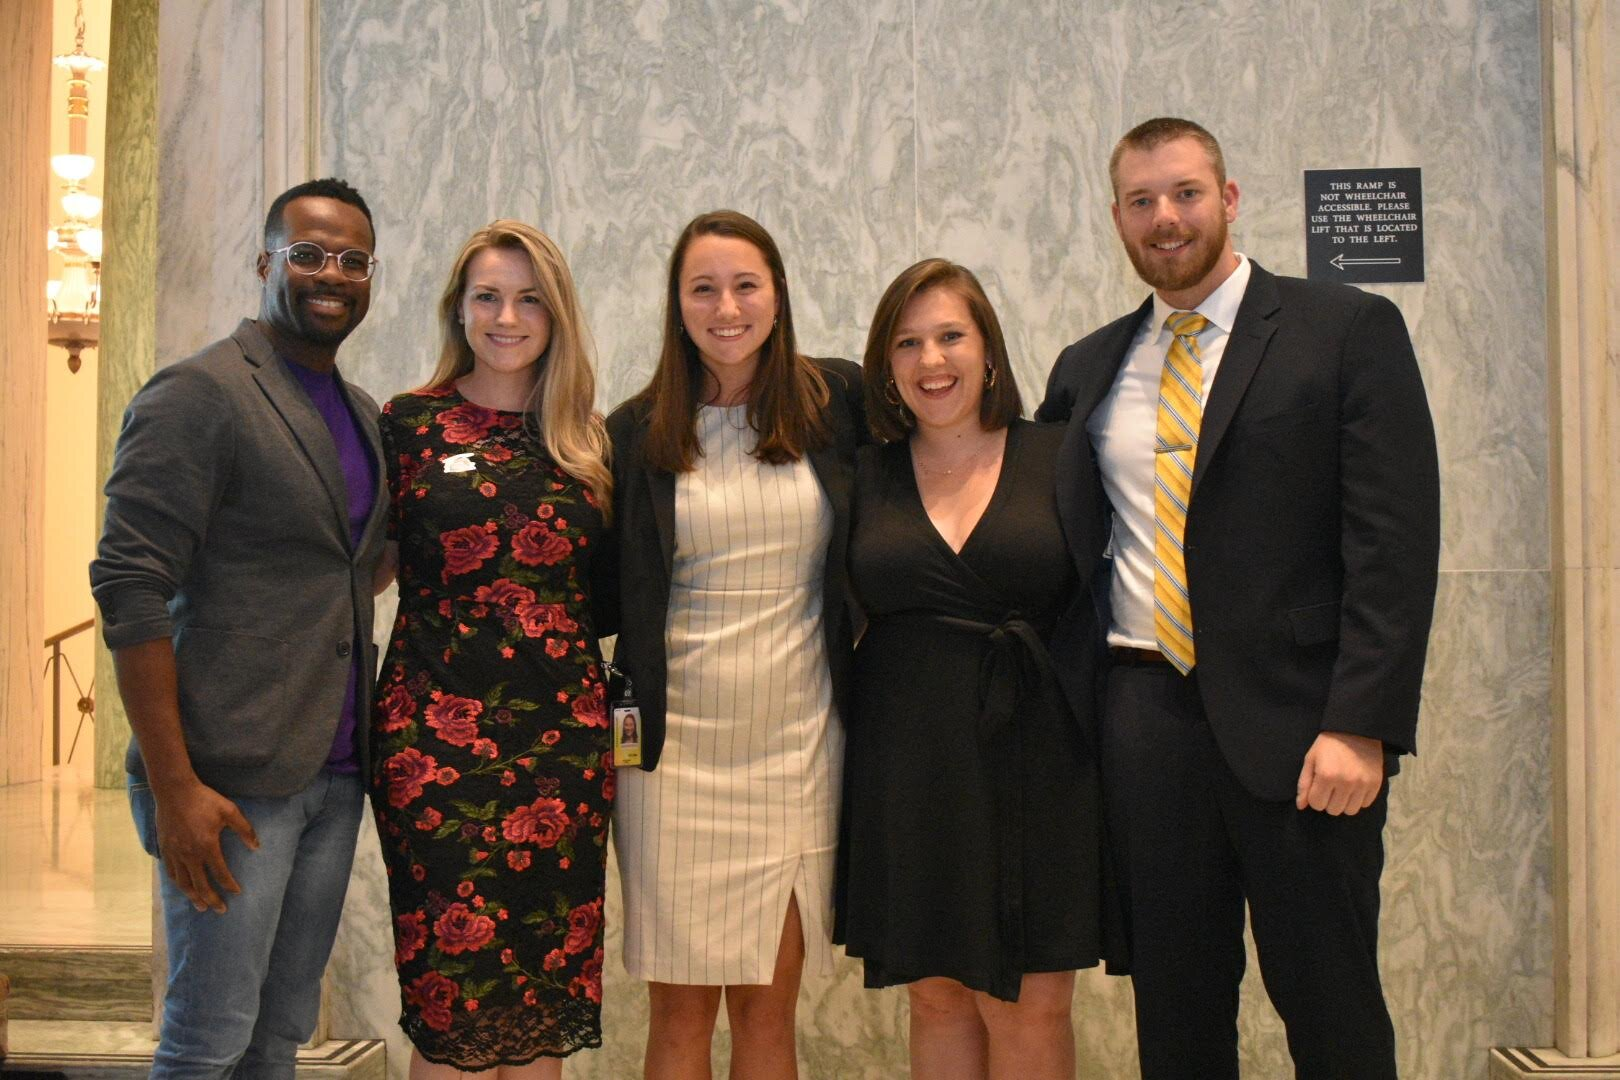 Left to right: Orie Ward, Executive Director, The Purple Aisle Audrey Henson, Founder & CEO, College to Congress Madison P., Student and program winner Maria Giannopouloss, Google Civics Outreach Ryan S., Student and program winner